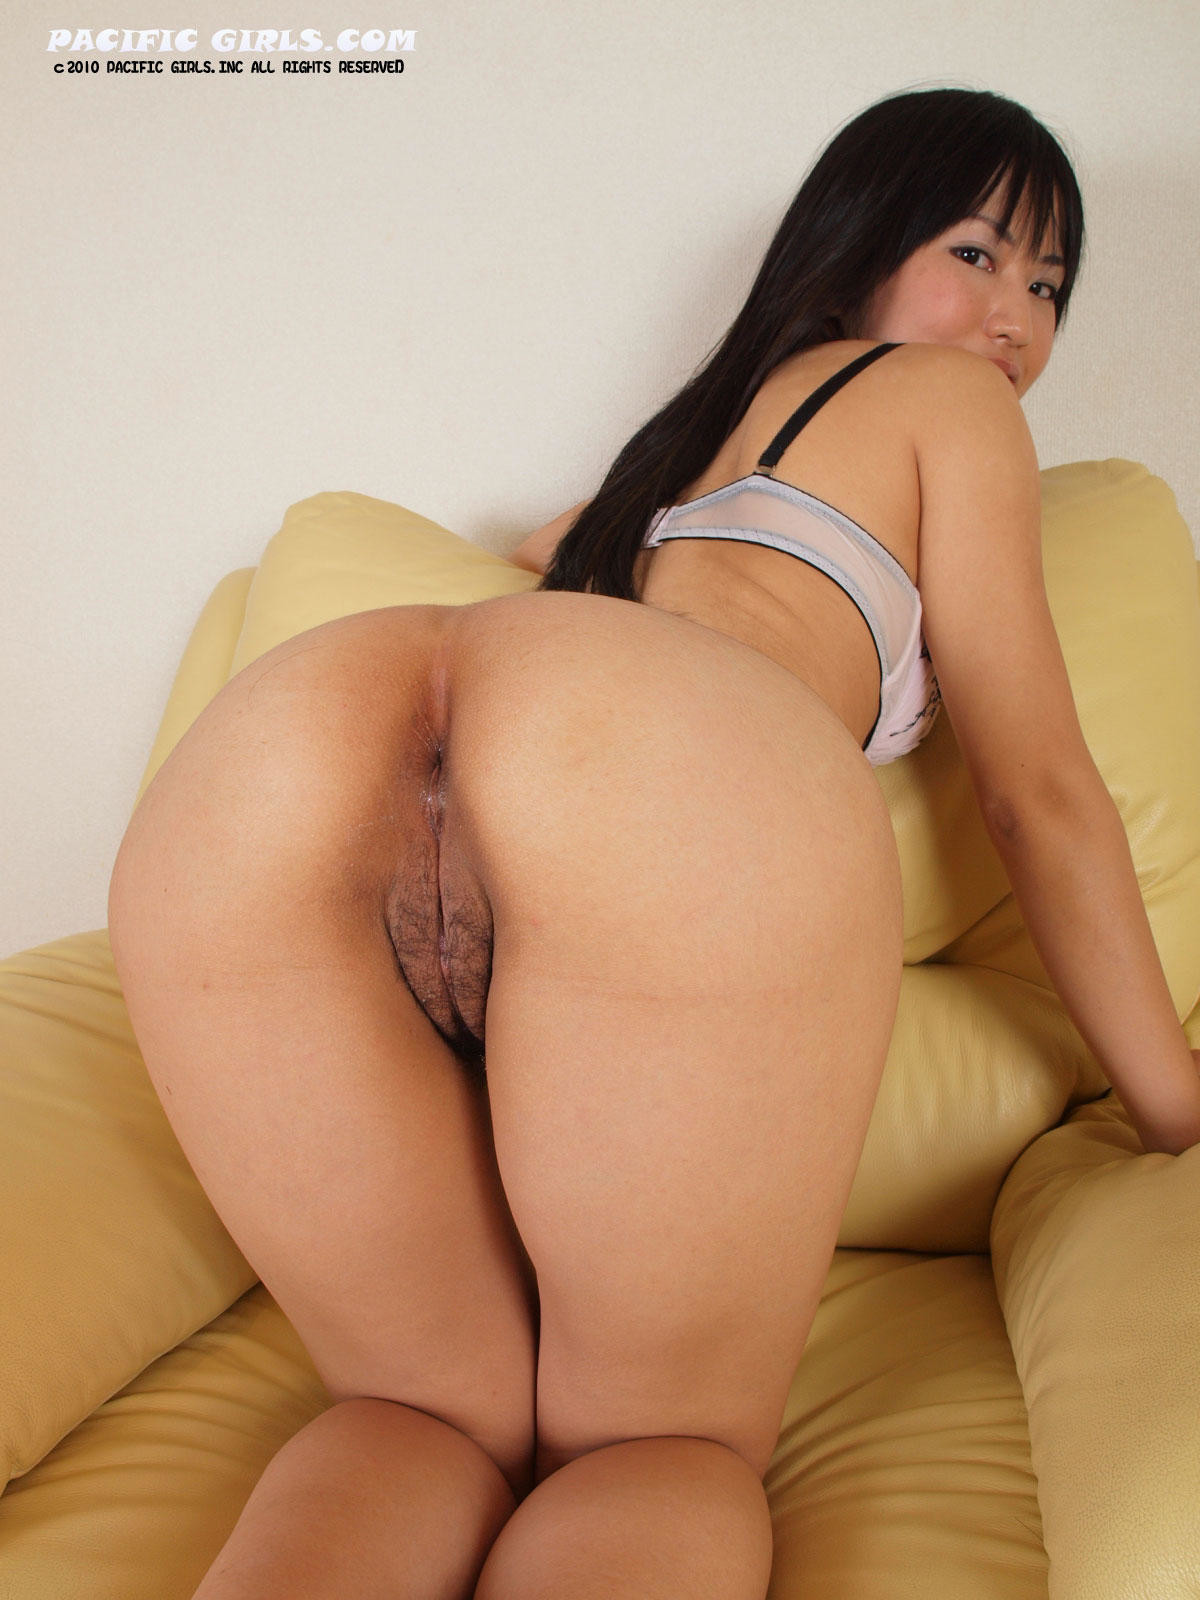 Round asian ass and pussy